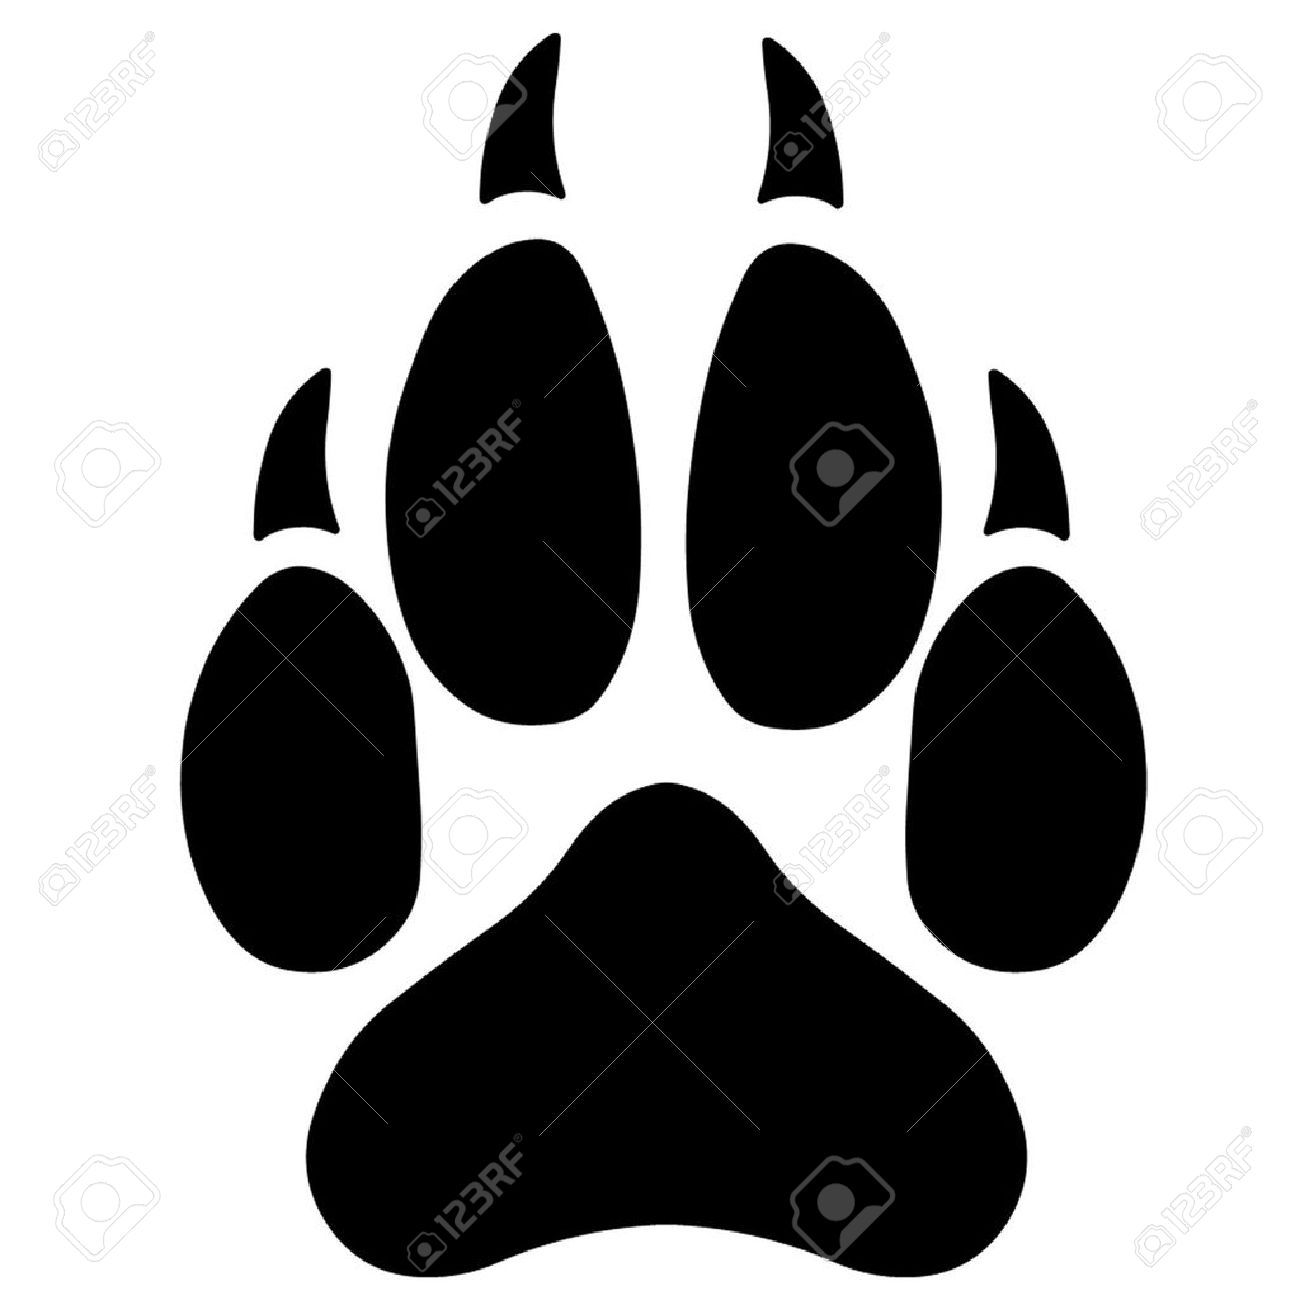 wolf paw print silhouette google search wolf vorlagen malen. Black Bedroom Furniture Sets. Home Design Ideas